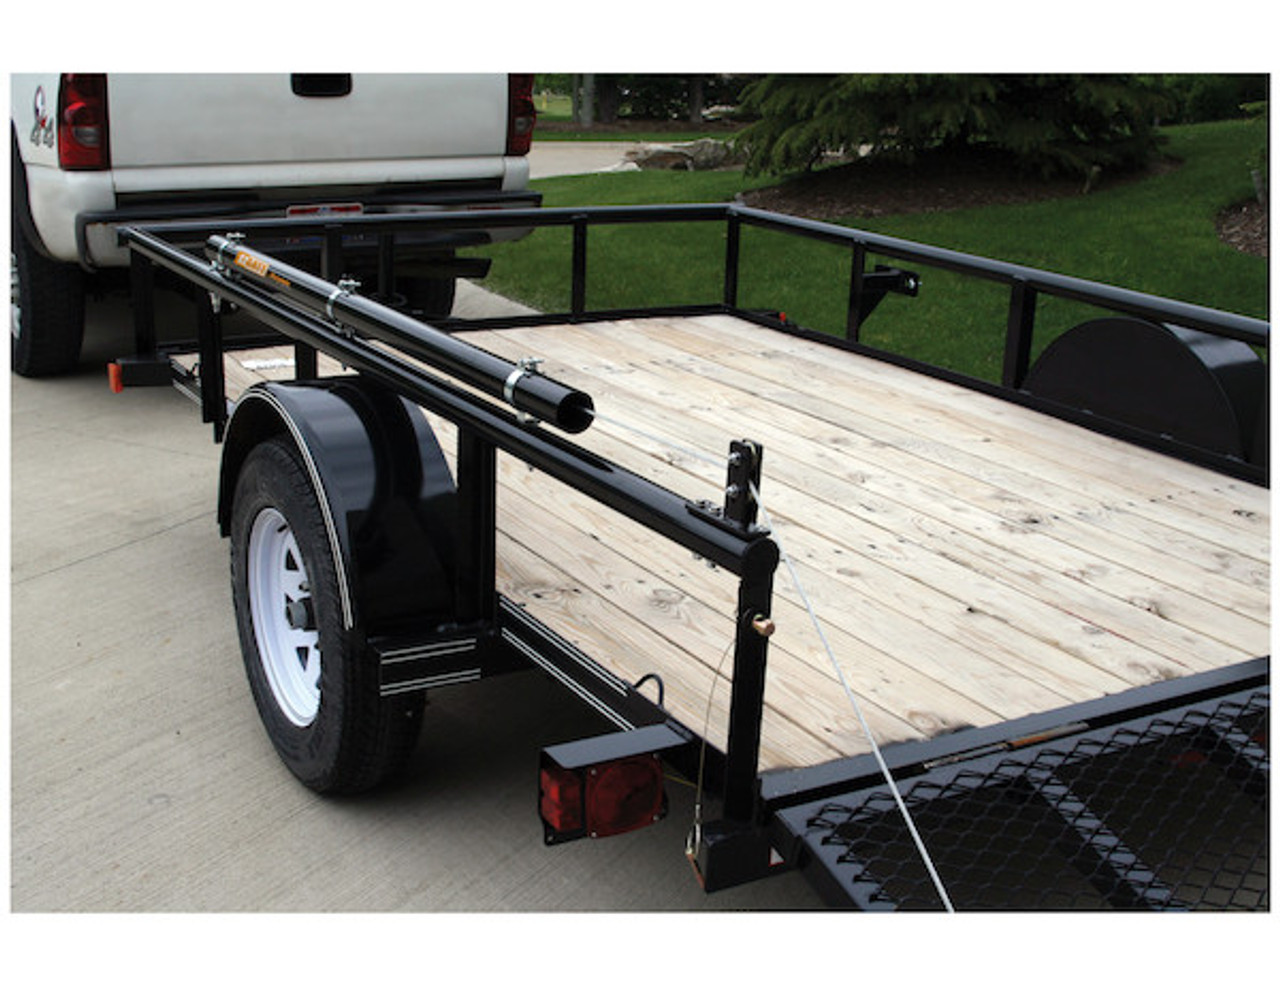 Buyers 5201000 EZ Gate™ Tailgate Assist for Landscaping Trailers and Open Style Trailers Picture # 4